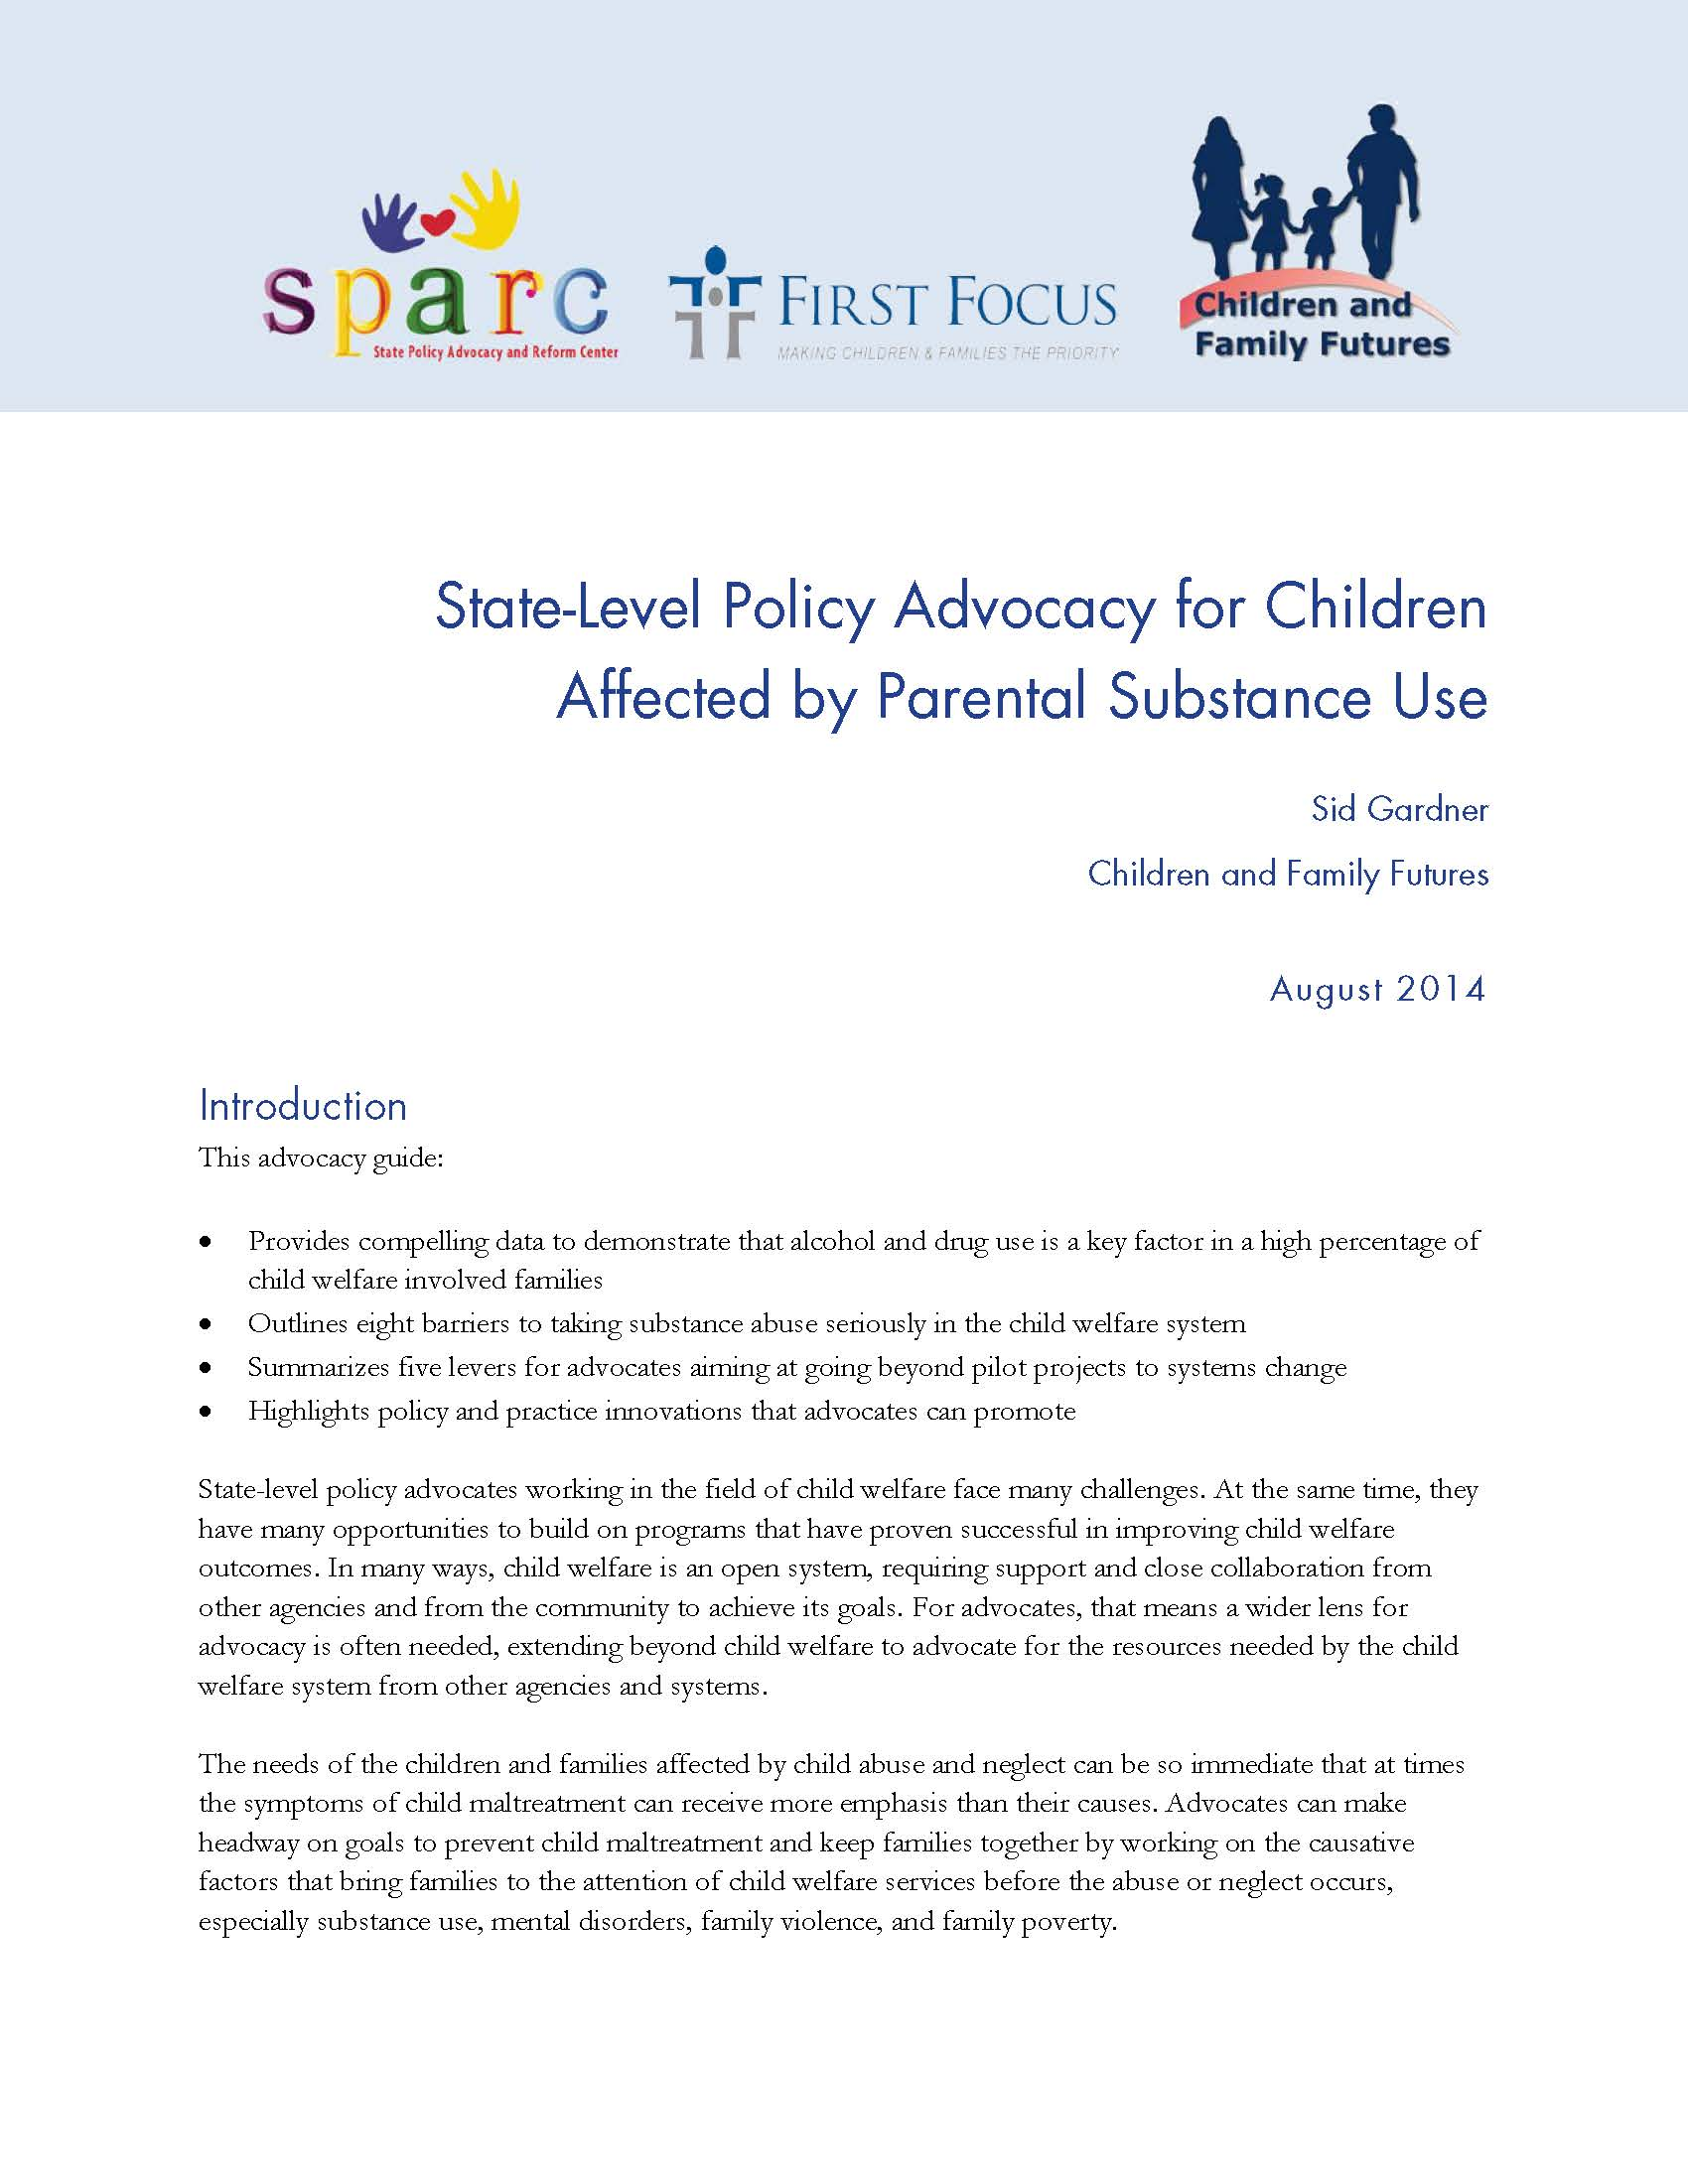 State-Level Policy Advocacy for Children Affected by Parental Substance Use_Page_01